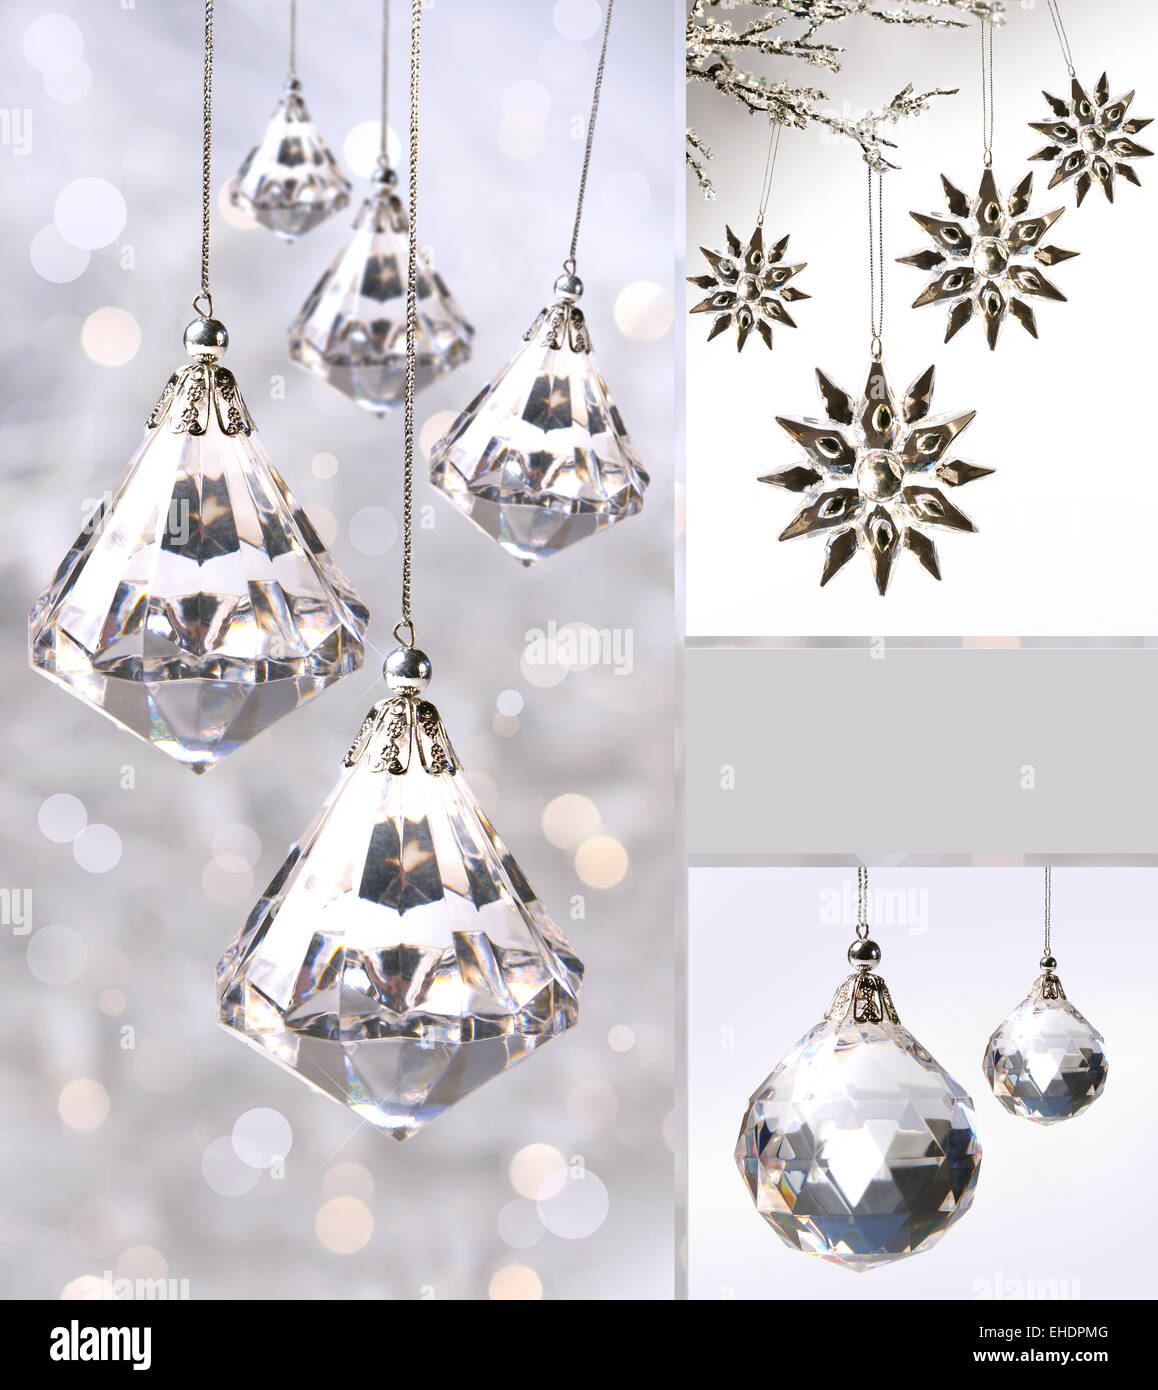 Crystal christmas ornaments against silver Stock Photo: 79593824 - Alamy